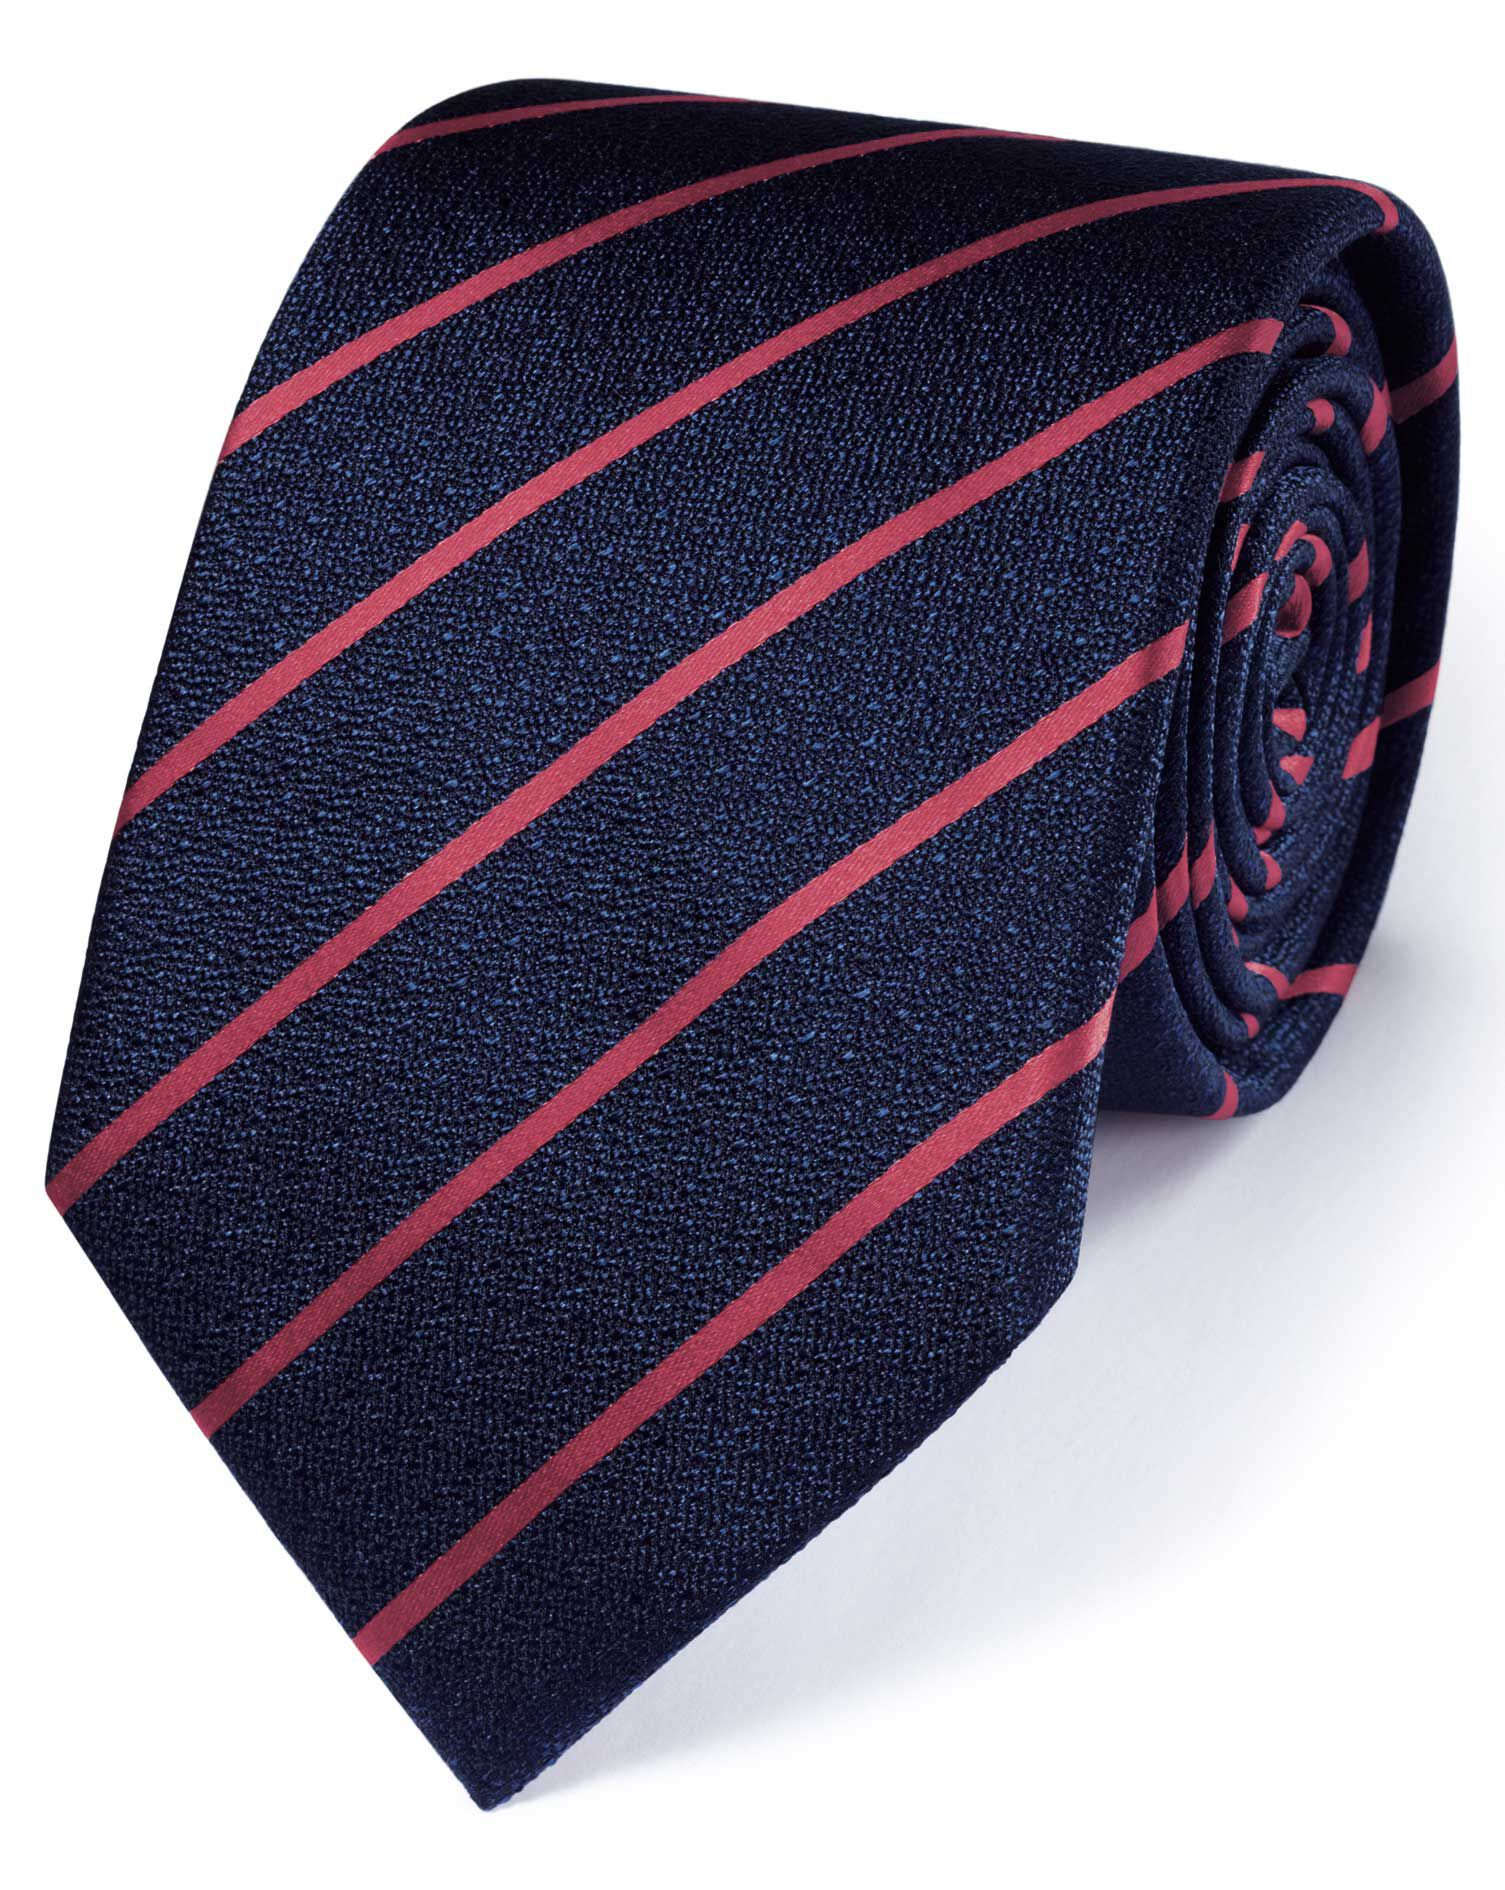 Navy and Coral Silk Classic Textured Stripe Tie Size OSFA by Charles Tyrwhitt